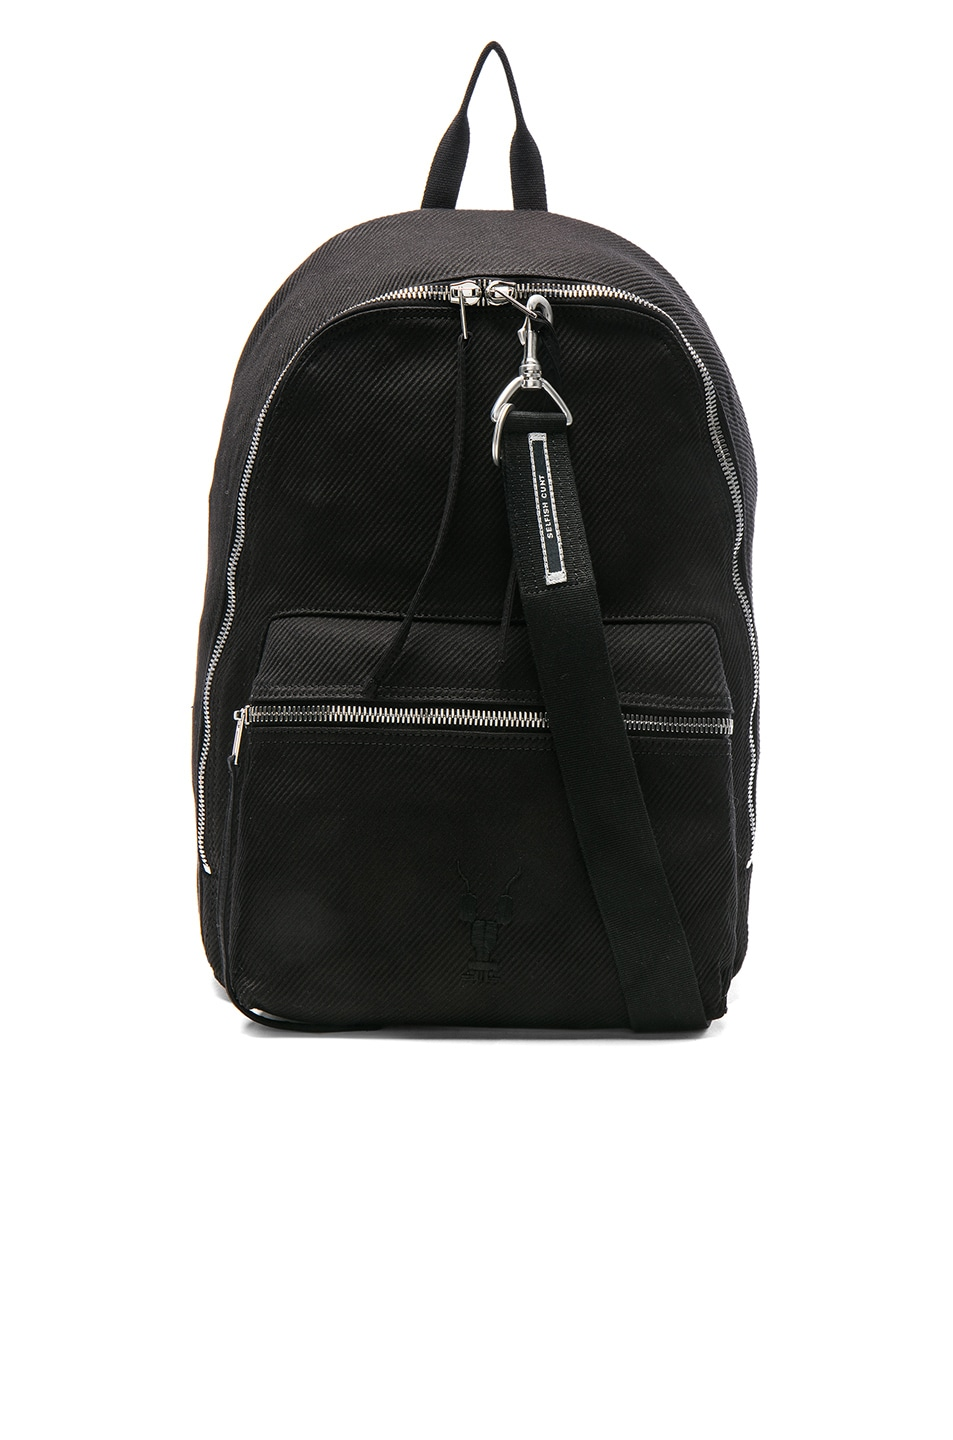 783ba24f4e Image 1 of DRKSHDW by Rick Owens Zaino Backpack in Black & Black